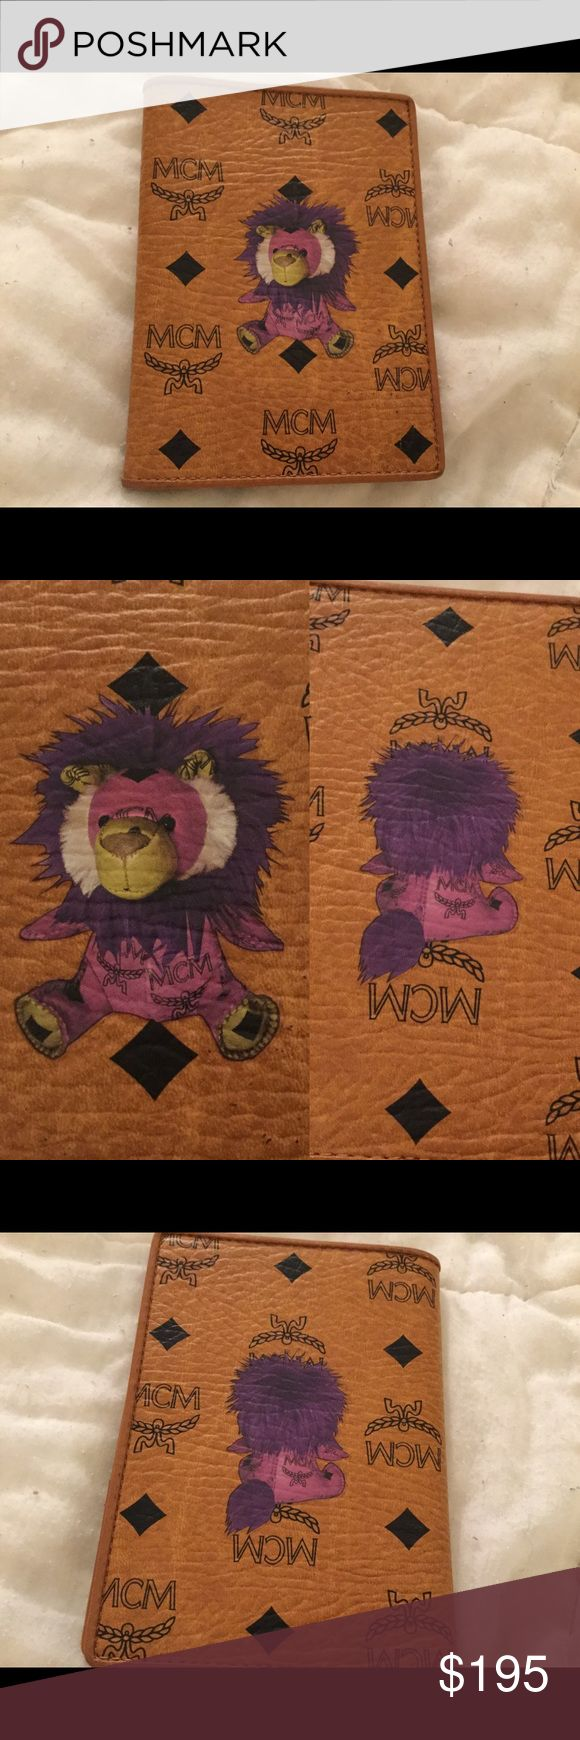 MCM (Munchen) Leather Passport Holder RARE Lion Rare reverse lions  authentic MCM (Munchen) leather passport holder. Features lion on the front and the back of the lion on the back of the passport holder. MCM Bags Wallets